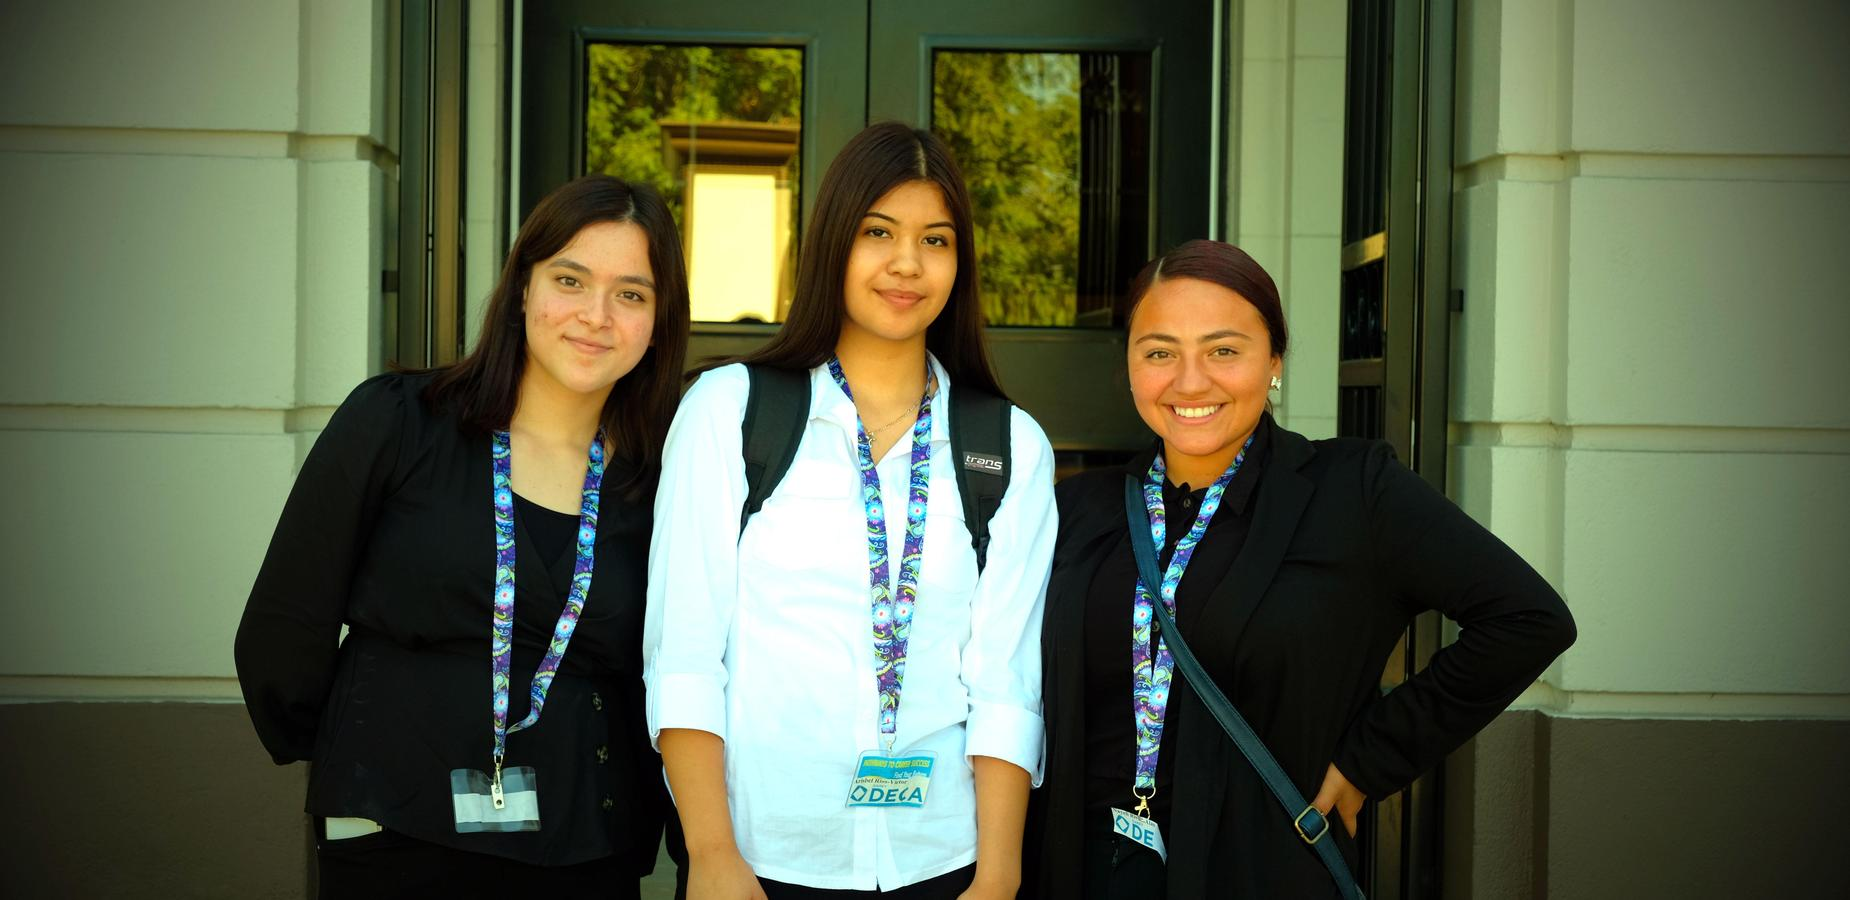 Pictured are the @ParkWestPUSD Graphic Design, @villageAcadPUSD Culinary and @GareyPUSD #DECA Students supporting the CTE/STEM Symposium. #Proud2bePUSD #ALLmeansALL